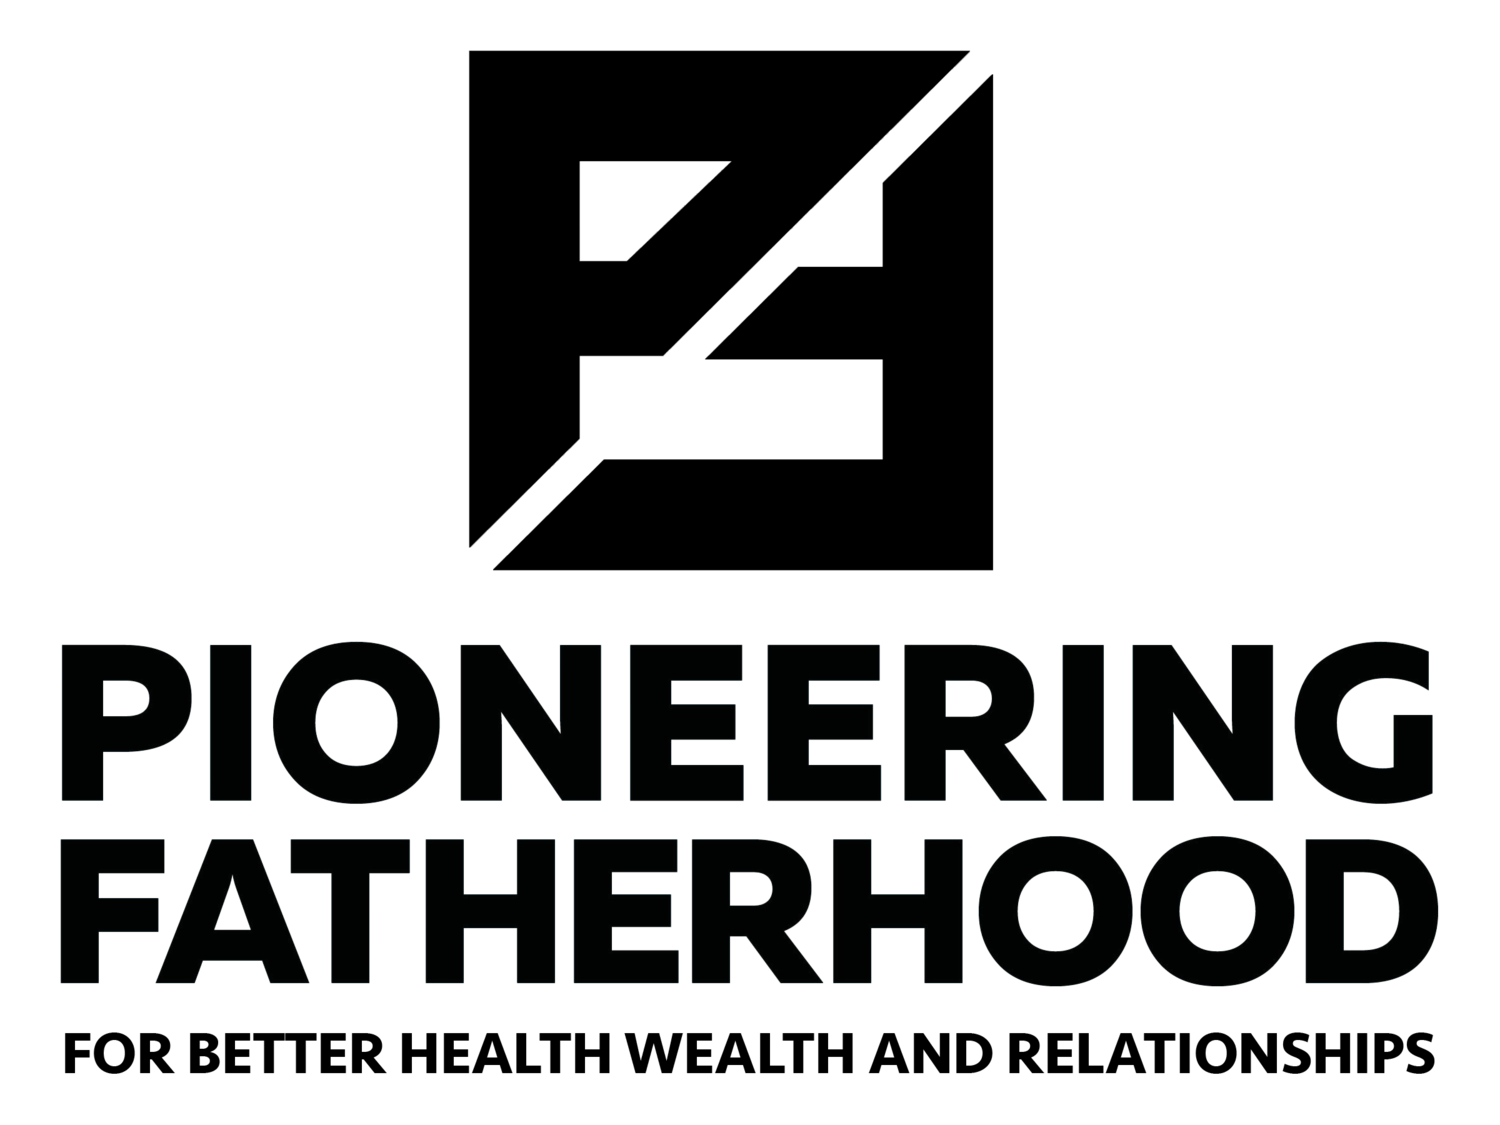 Pioneering Fatherhood